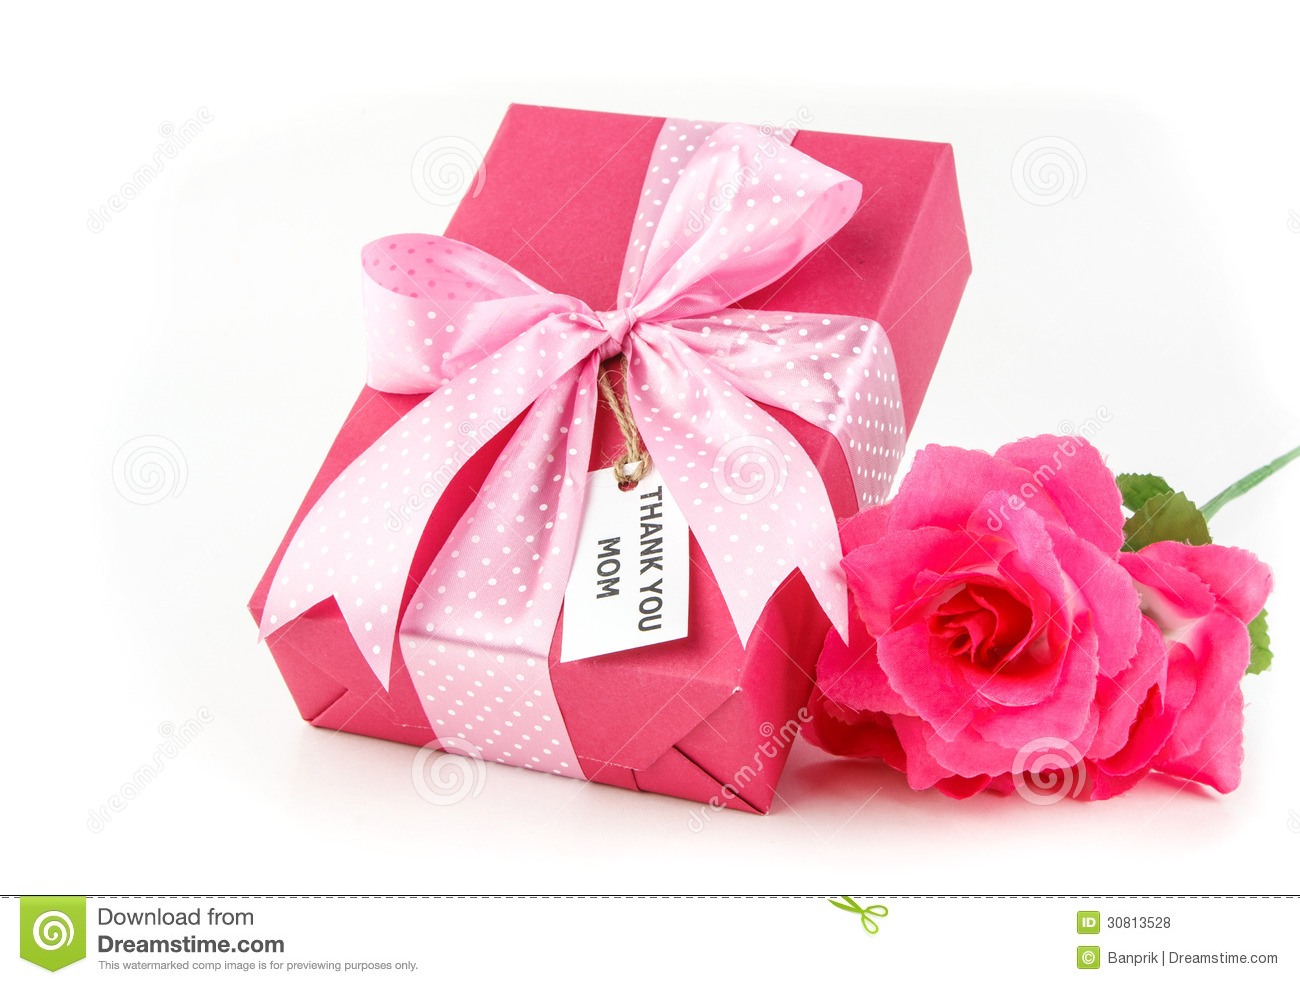 Gift for mom royalty free stock photos image 30813528 for A gift for a mom